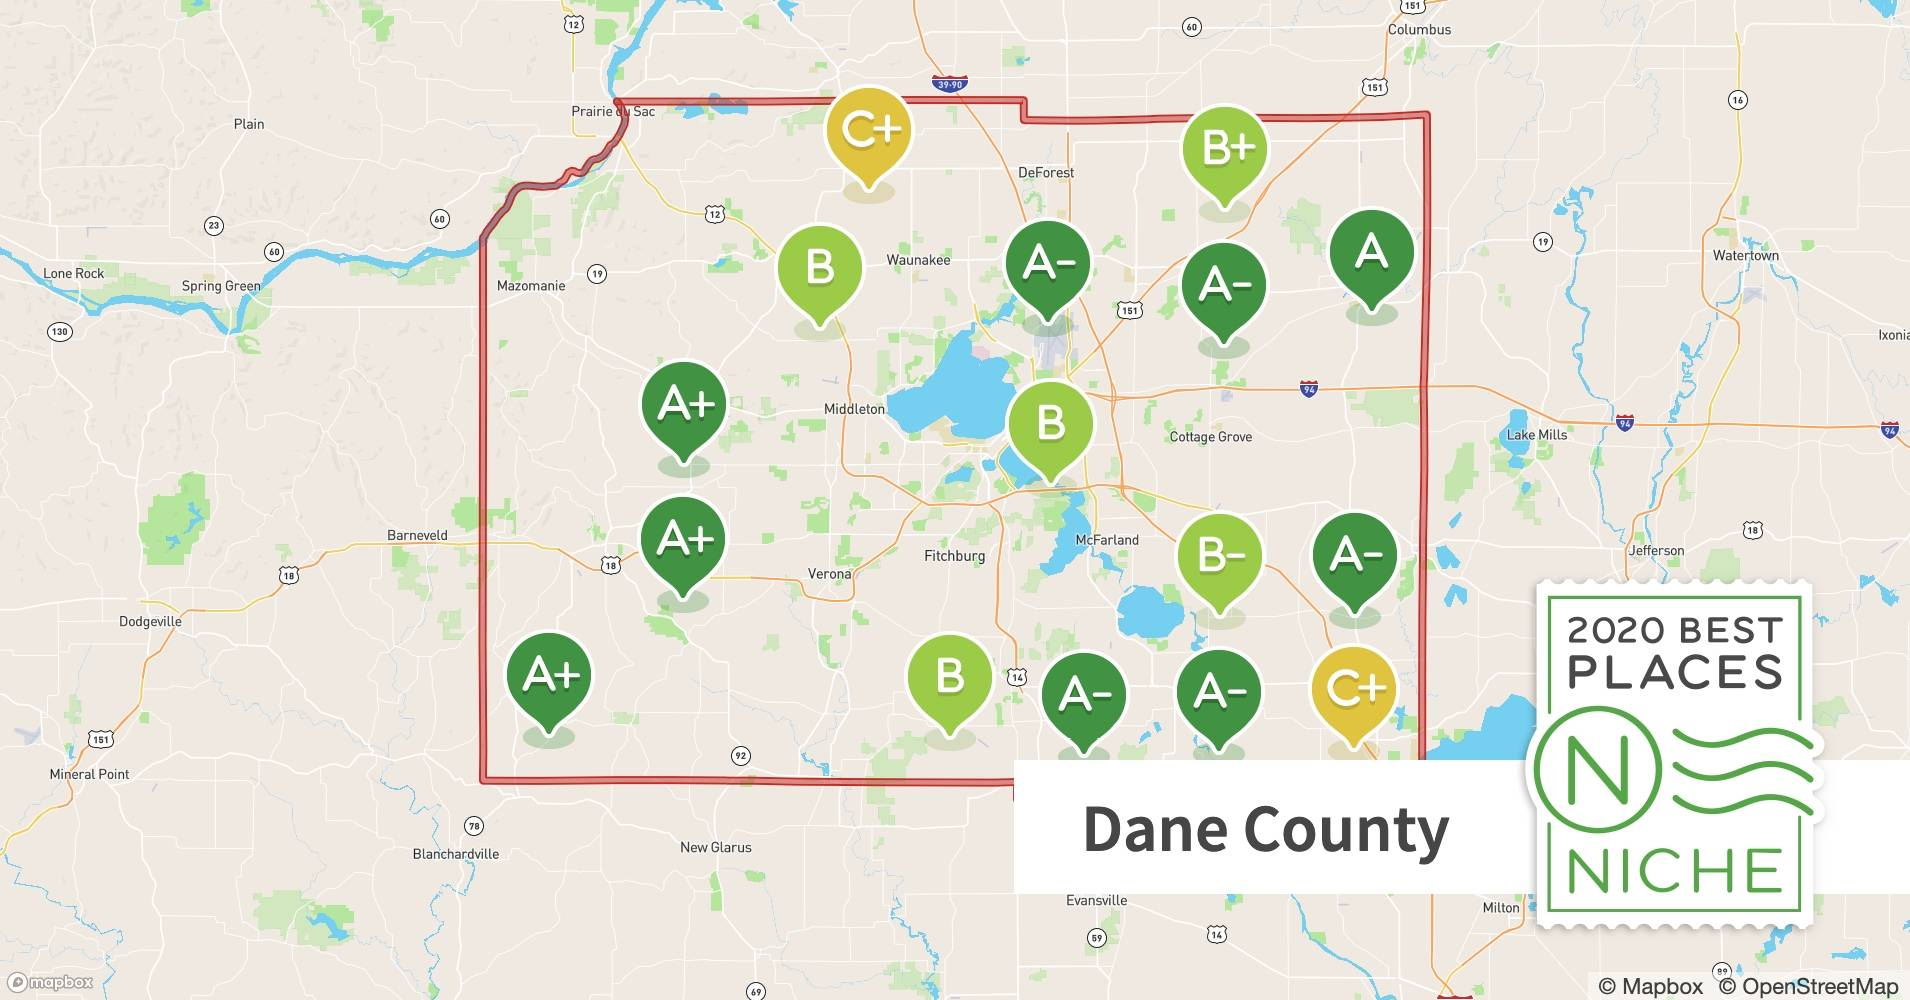 2020 Best Places To Retire In Dane County Wi Niche